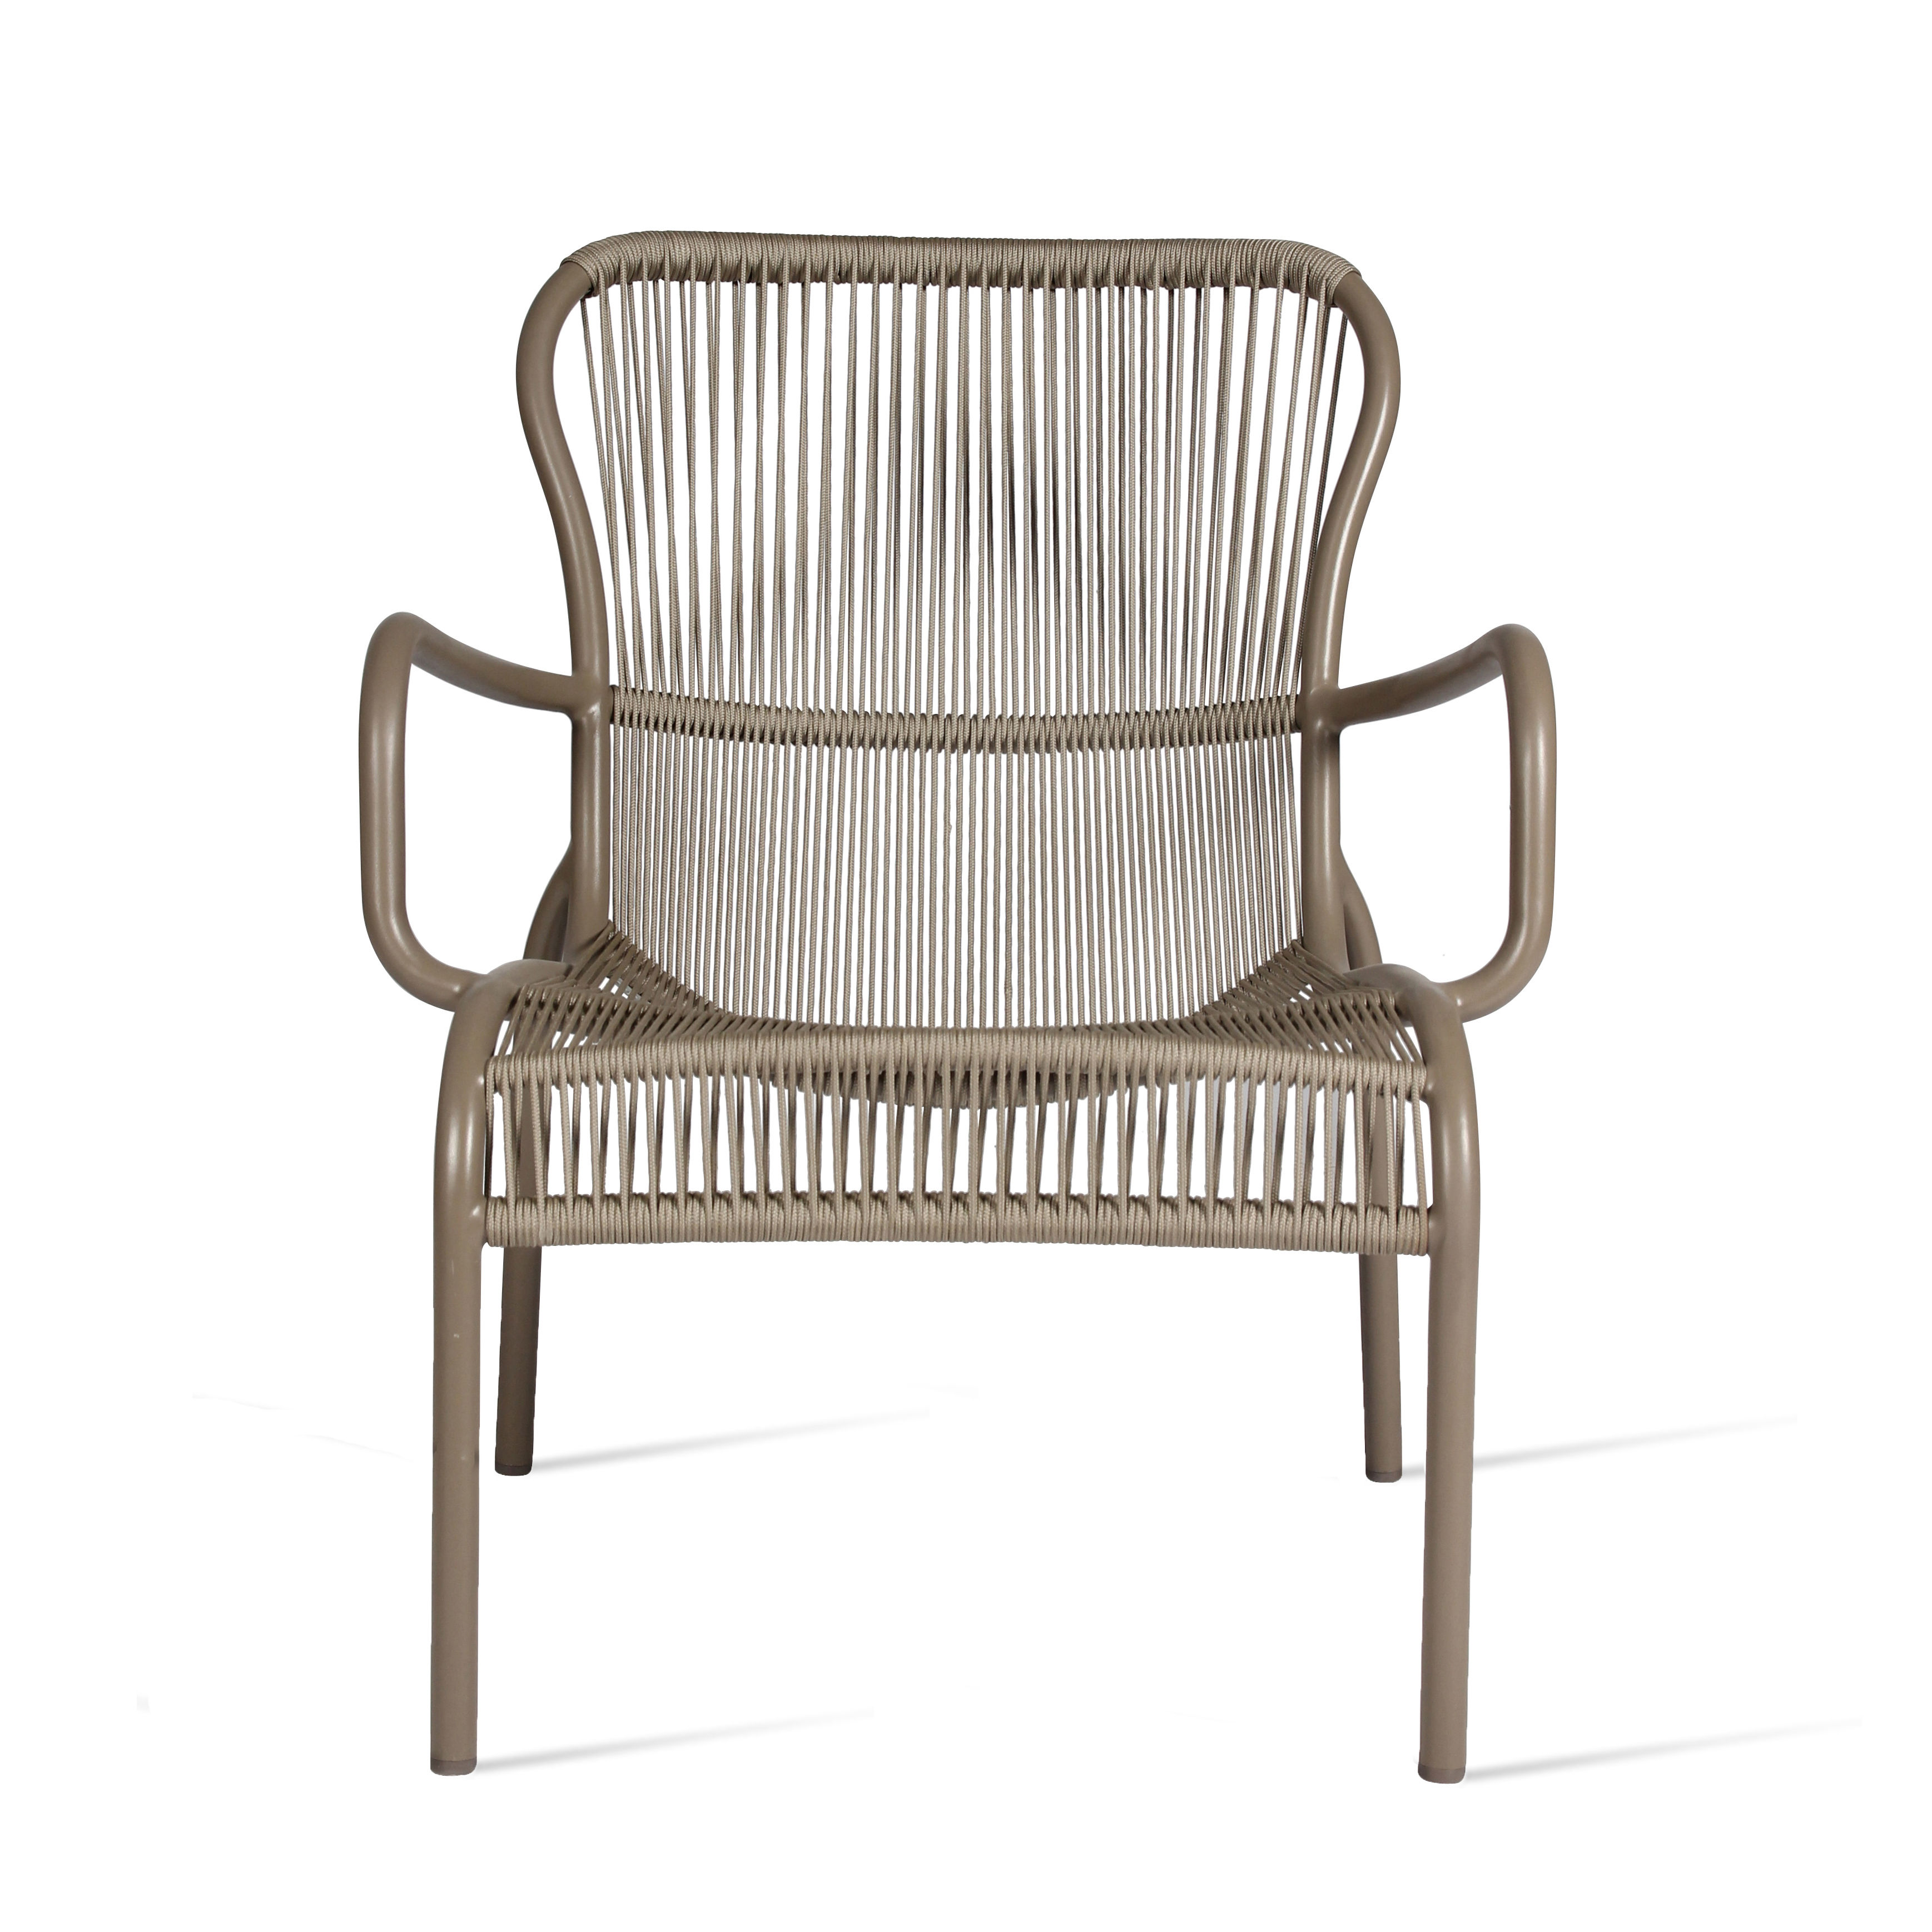 Furniture - Armchairs - Loop Lounge Rope Low armchair - / Stackable - Hand-woven polypropylene cord by Vincent Sheppard - Taupe - Polypropylene rope, Thermolacquered aluminium